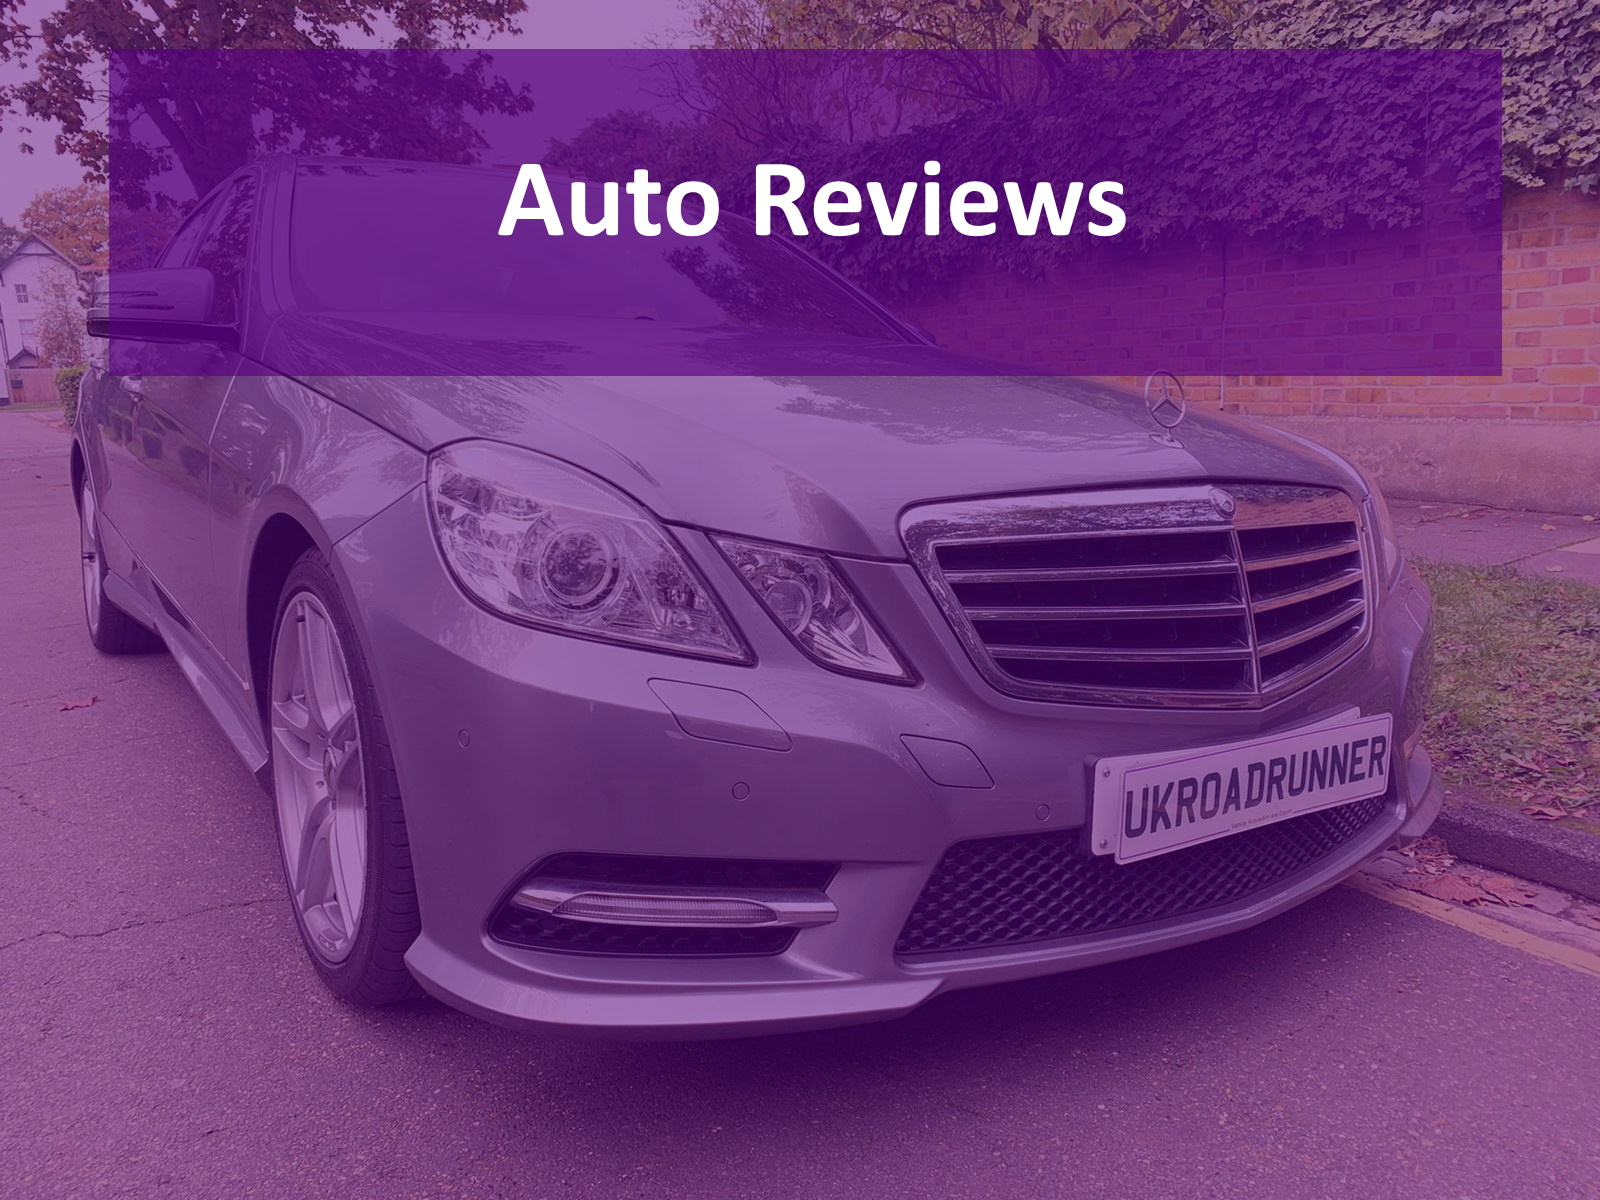 Auto Reviews Image - Auto Reviews